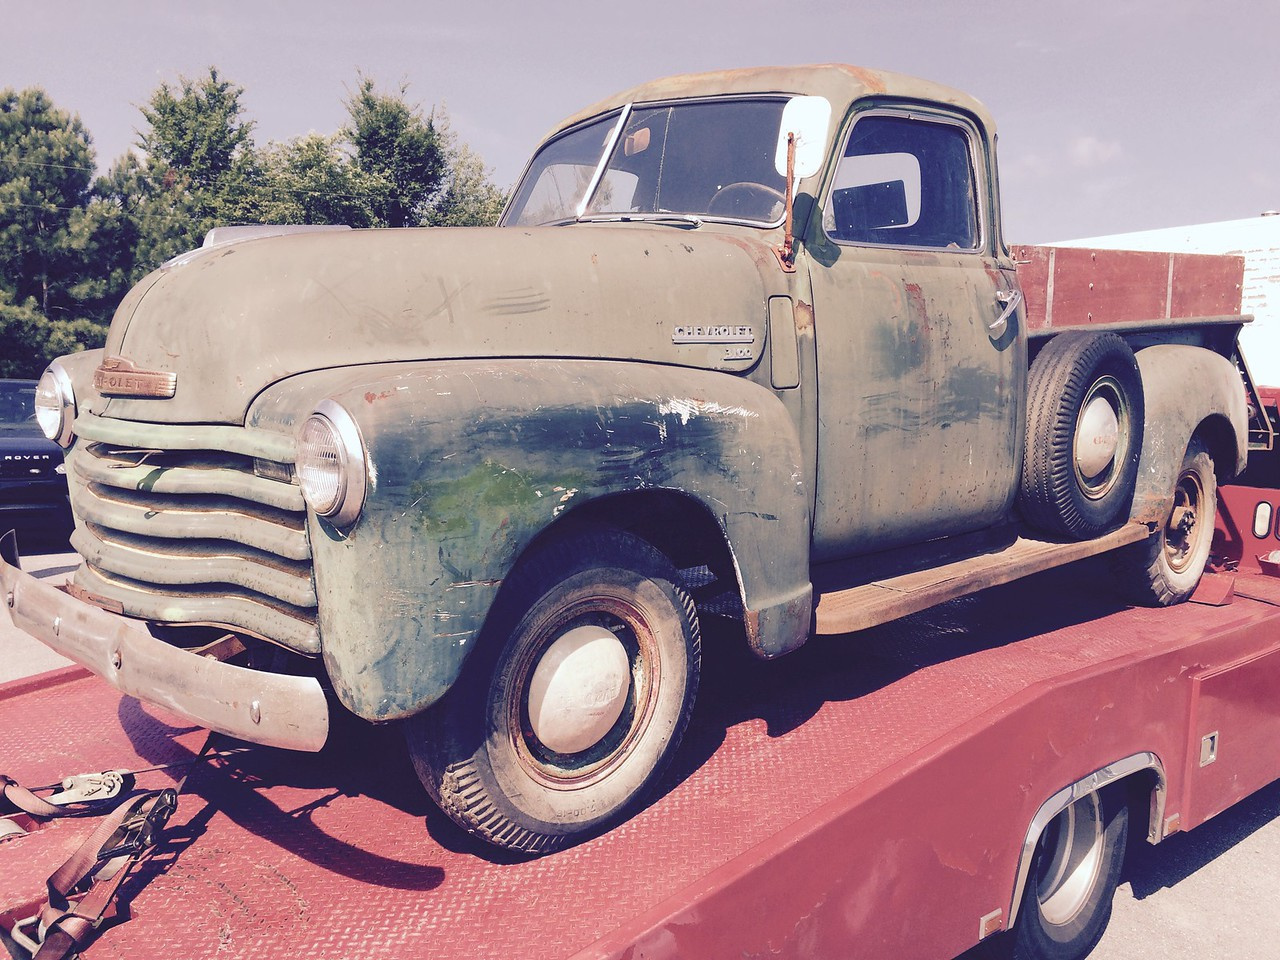 1948 Chevrolet 3100 farm truck fresh out of Iowa cornfield (Clarksville, Tennessee to White Bluff, Tennessee)